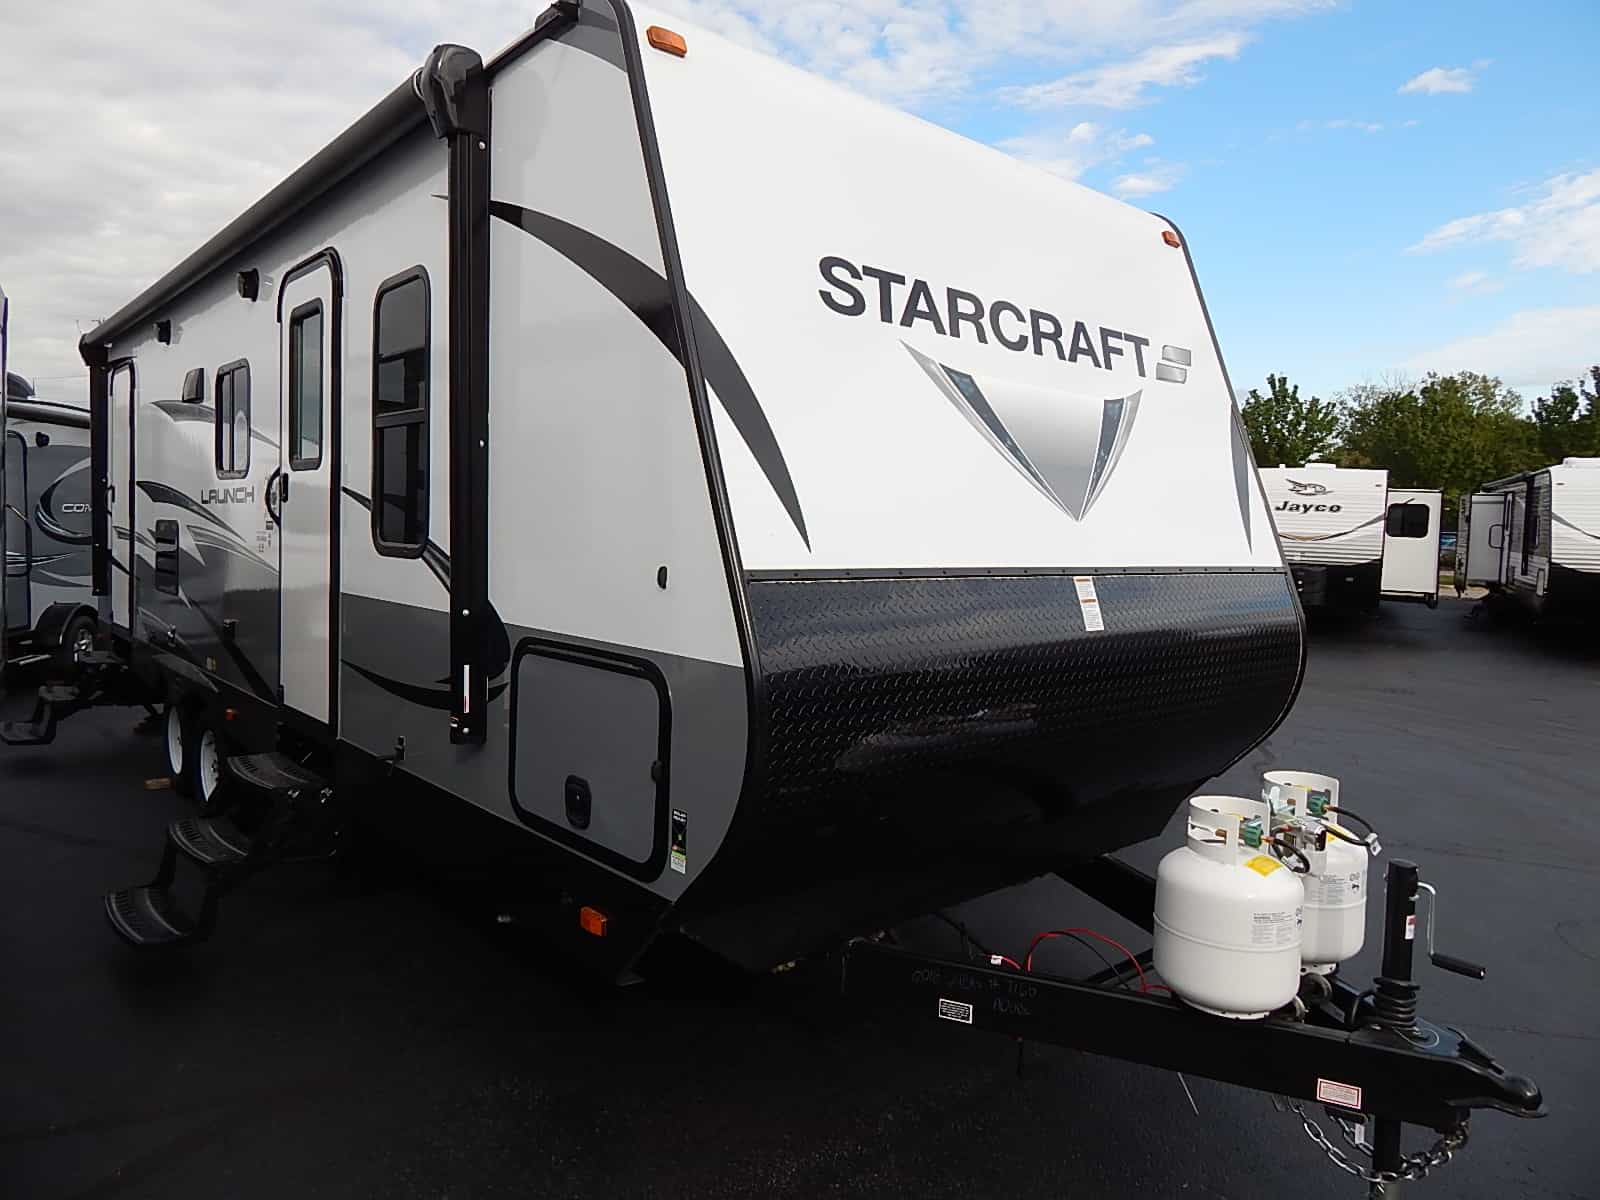 NEW 2018 Starcraft LAUNCH OUTFITTER 24BHS - Rick's RV Center